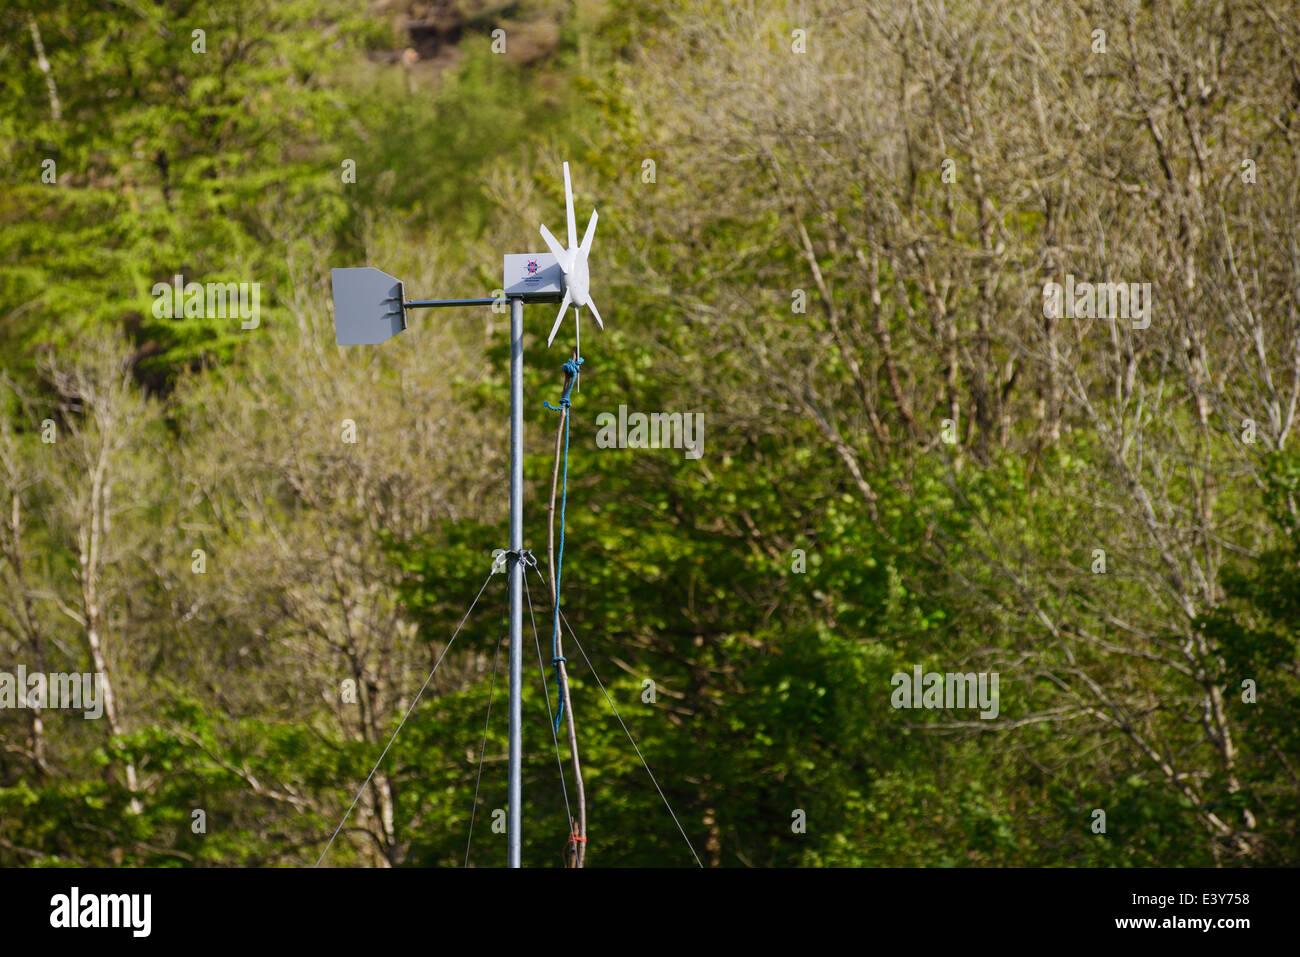 Small wind turbine, secured with a stick and rope for maintainance, Wales, UK. - Stock Image